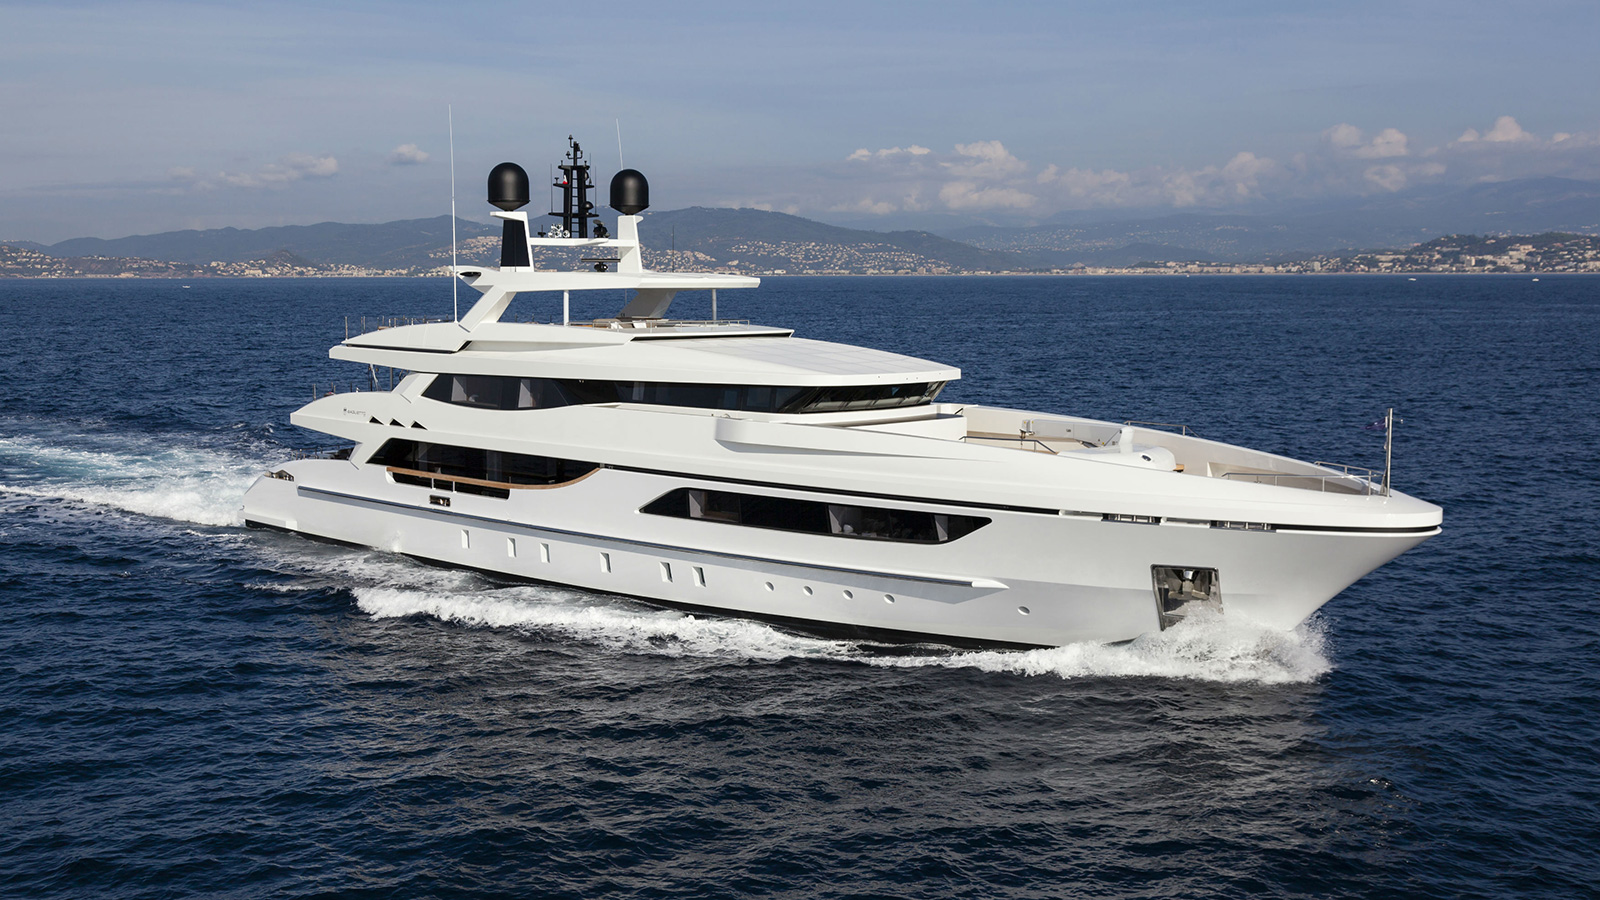 Running Profile Of The Superyacht